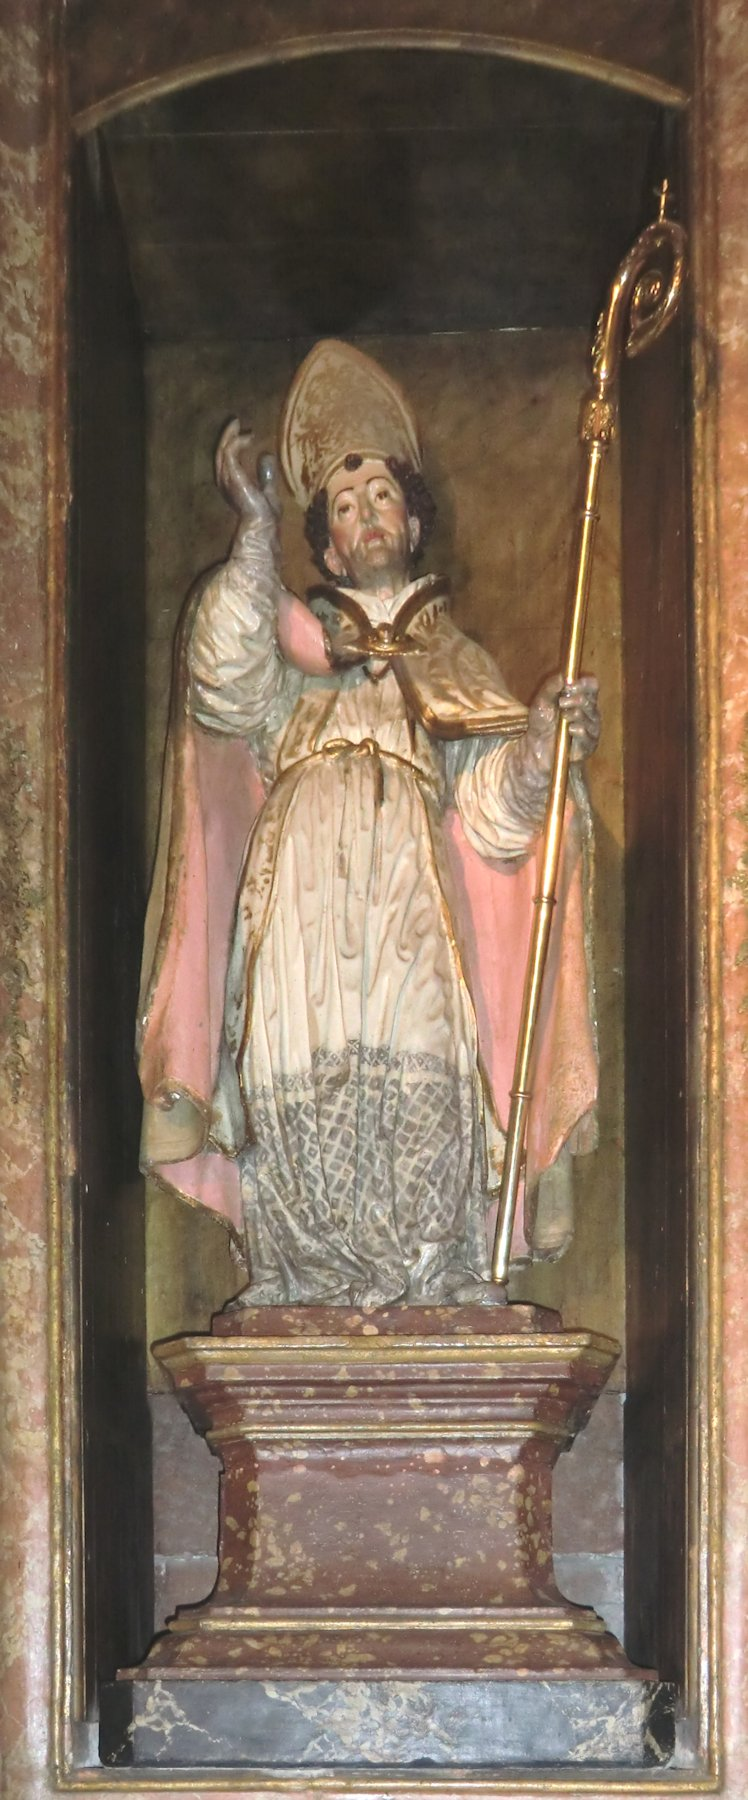 Statue in der Kathedrale in Lugo